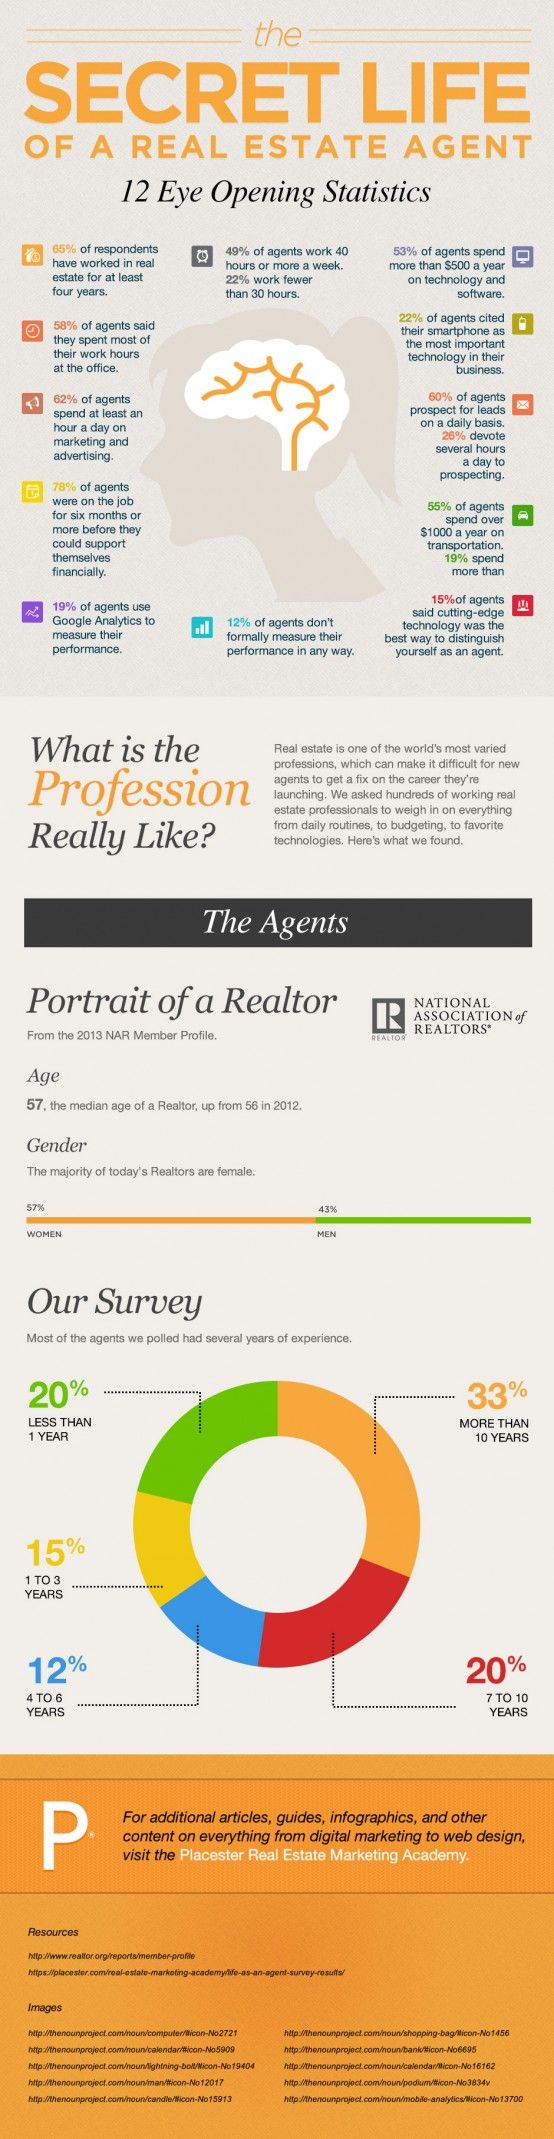 To provide some insight into the daily lives of real estate agents, check out this infographic: The Secret Life of a Real Estate Agent. #agentsuccess #realestate http://plcstr.com/1y9CYE3